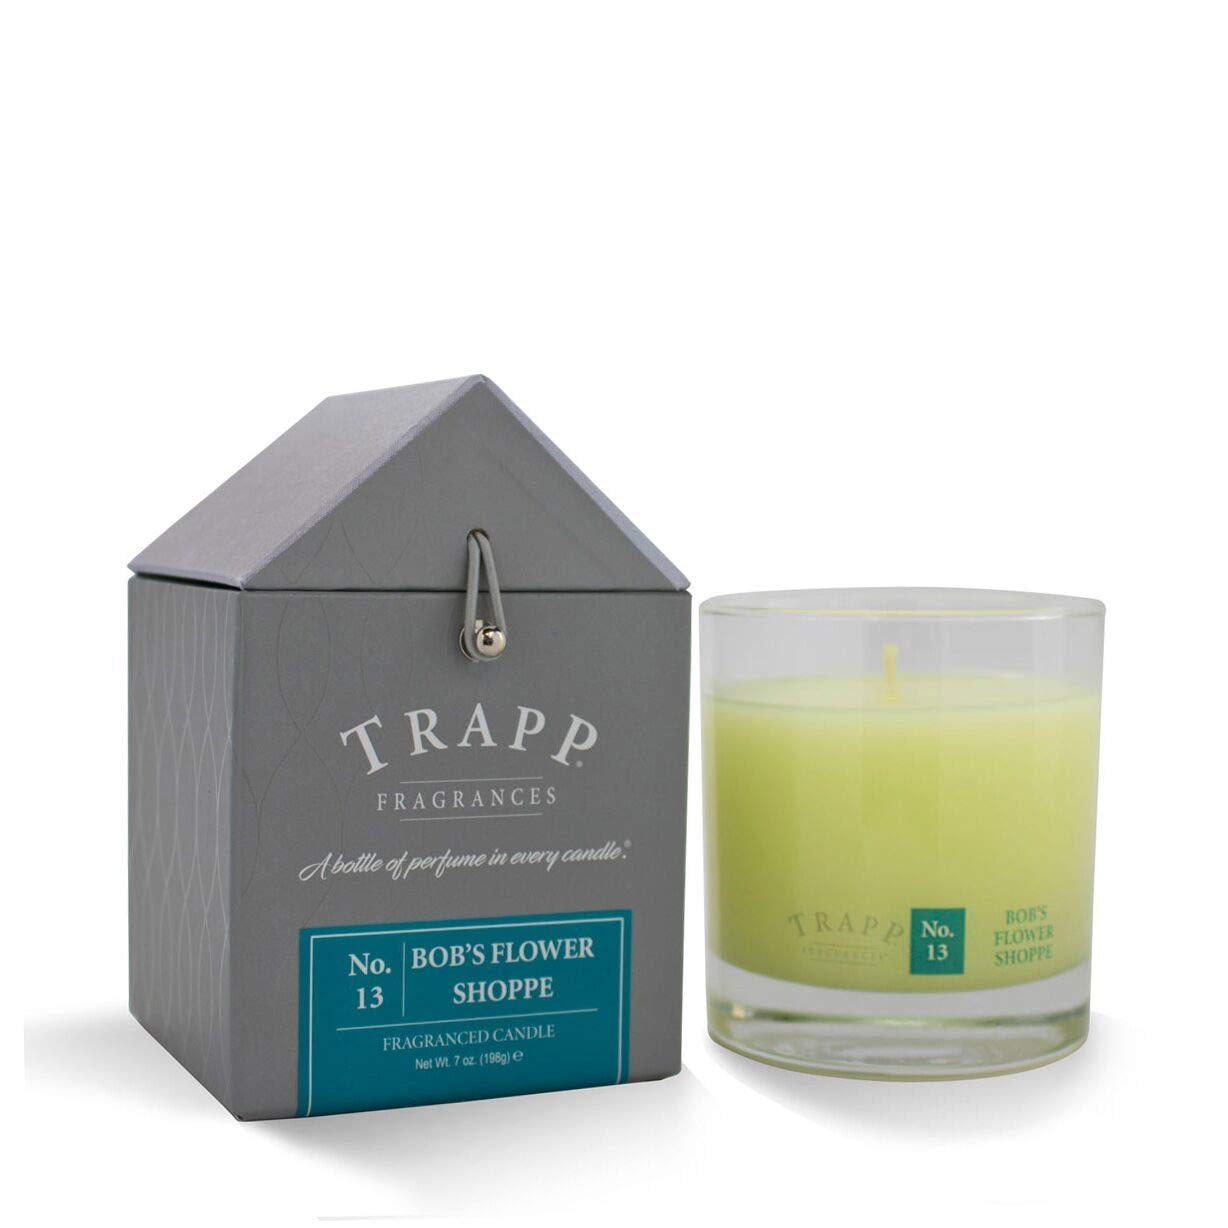 Trapp Signature Home Collection No. 13 Bob's Flower Shoppe Poured Scented Candle, 7-Ounce by Trapp